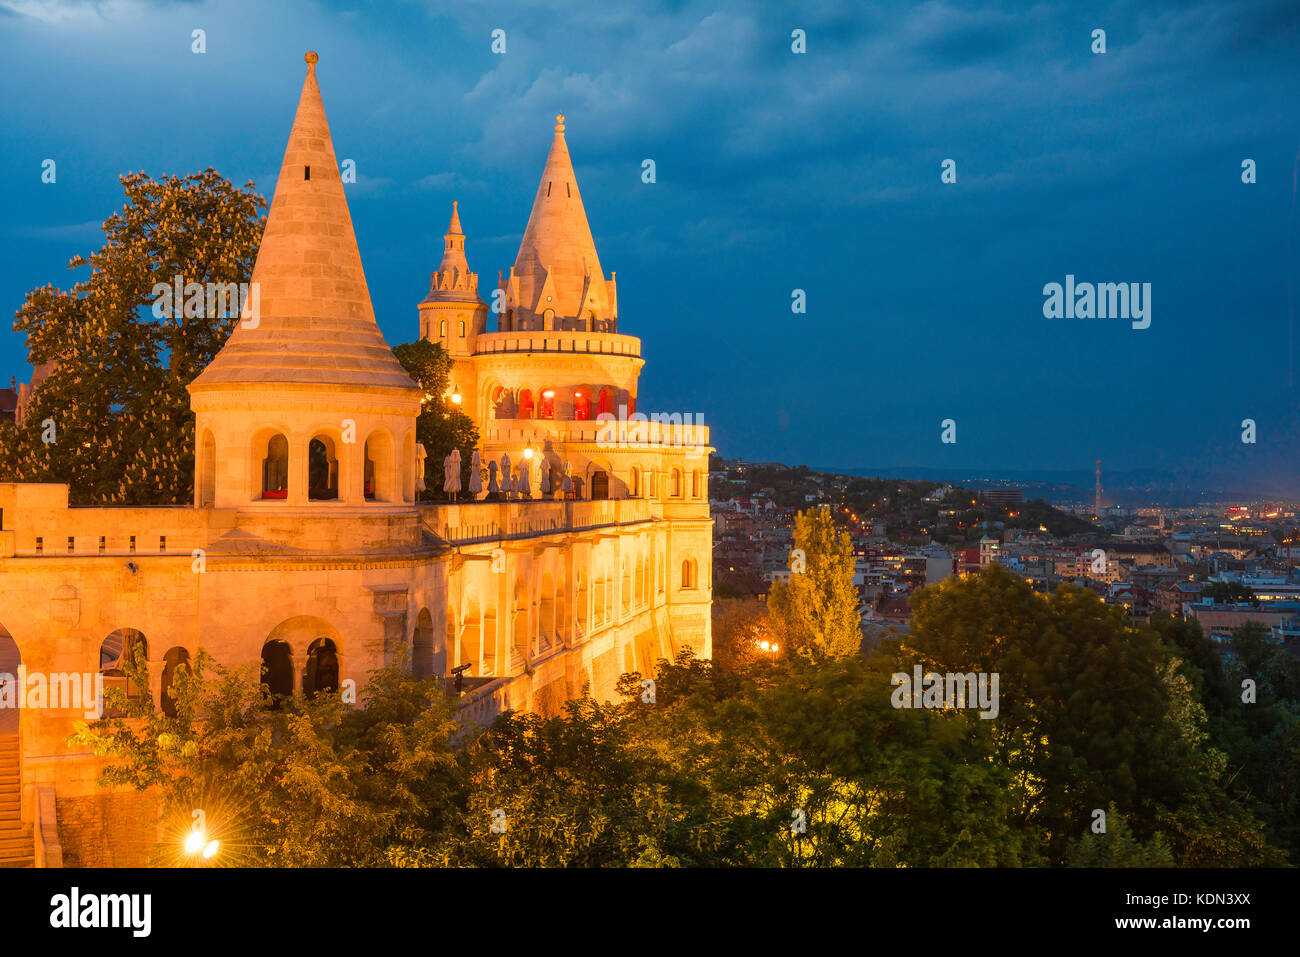 Budapest Fishermens Bastion, view of a turreted section of the Fishermen's Bastion at night illuminated by floodlights, Stock Photo